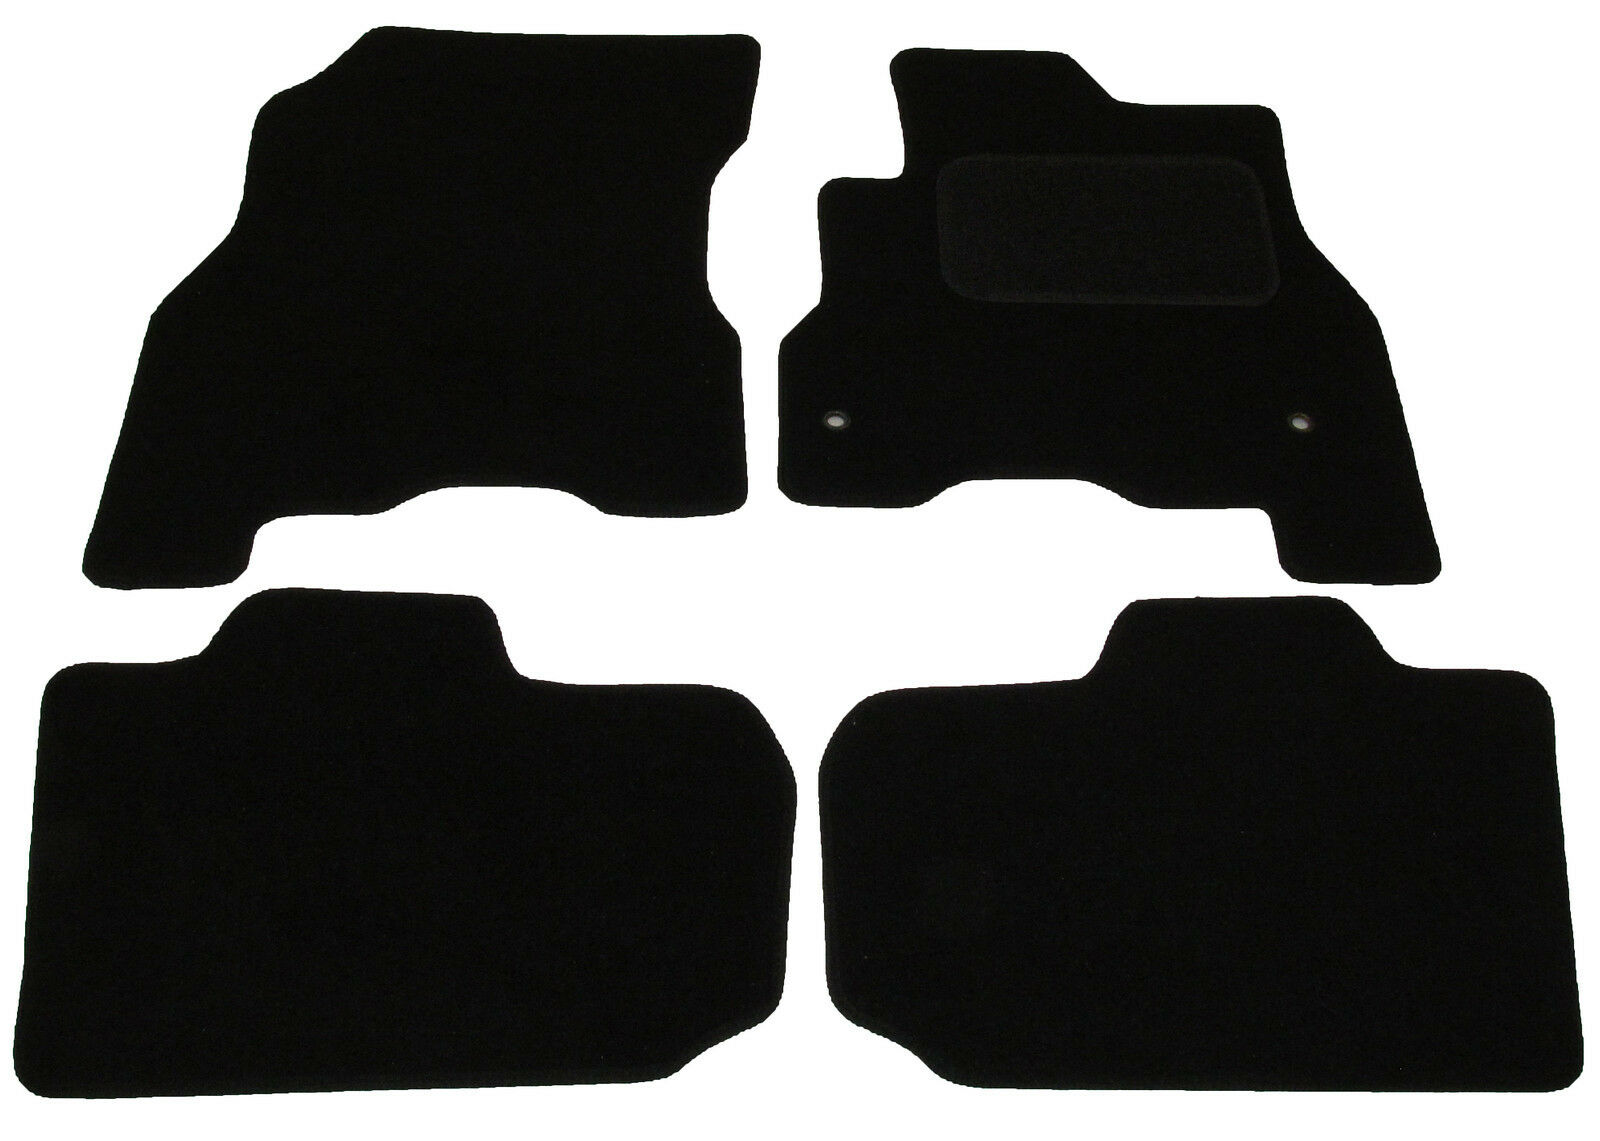 Tailored Car Mats Nissan Leaf With 2 Clips 2014 2015 2016 2017 Ebay